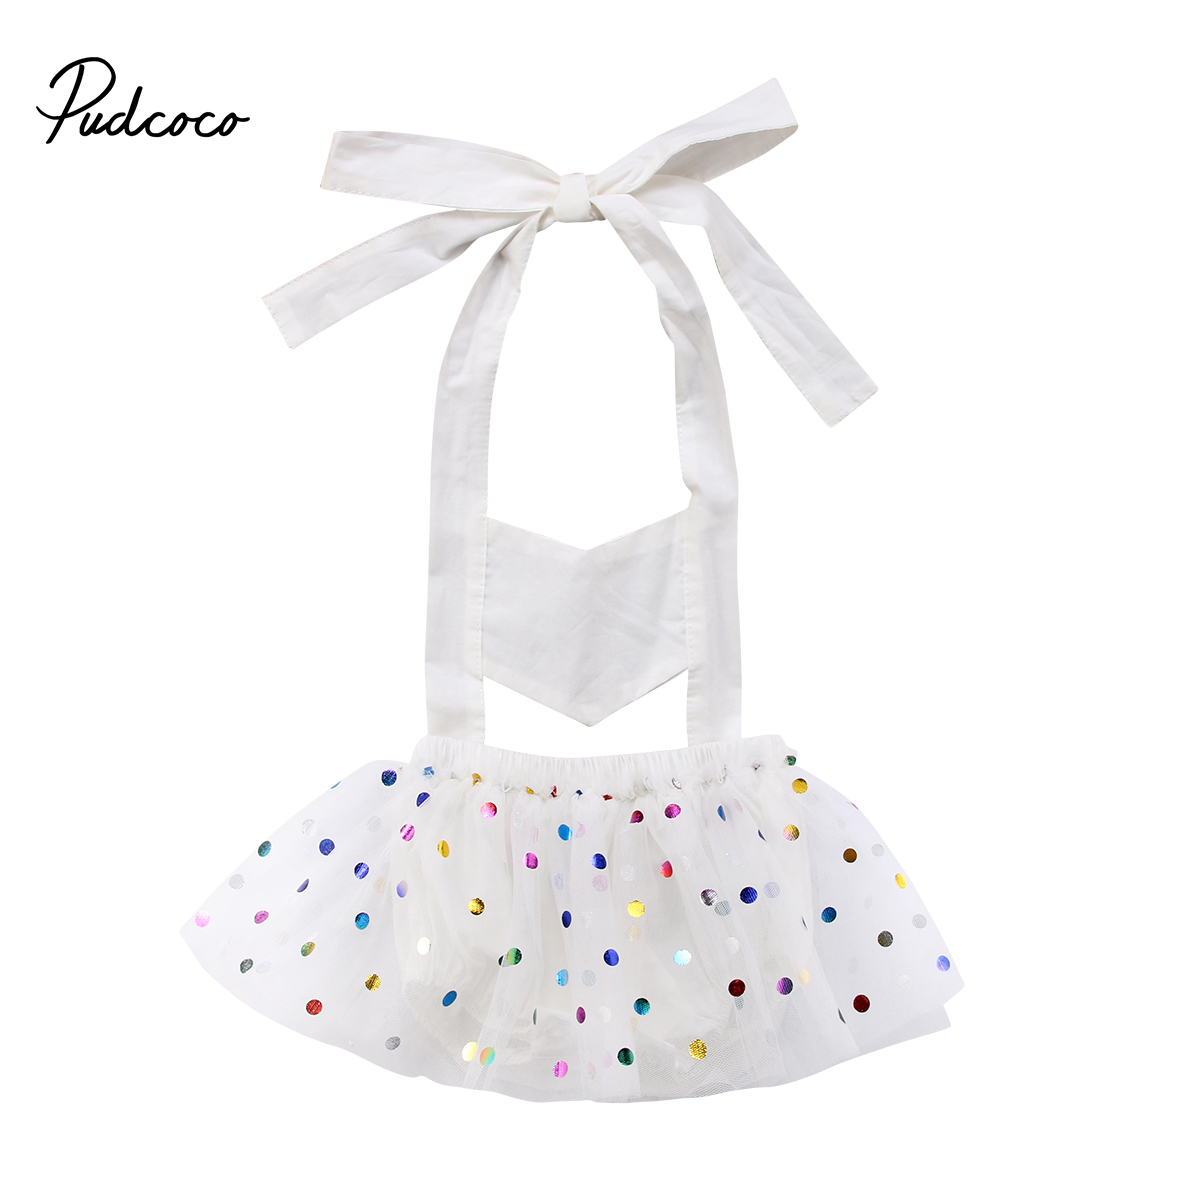 2018 Cute Baby Romper Sequin Dot Newborn Kids Baby Girls Party Romper White Tulle Jumper Sundress Sleeveless Outfits Clothes